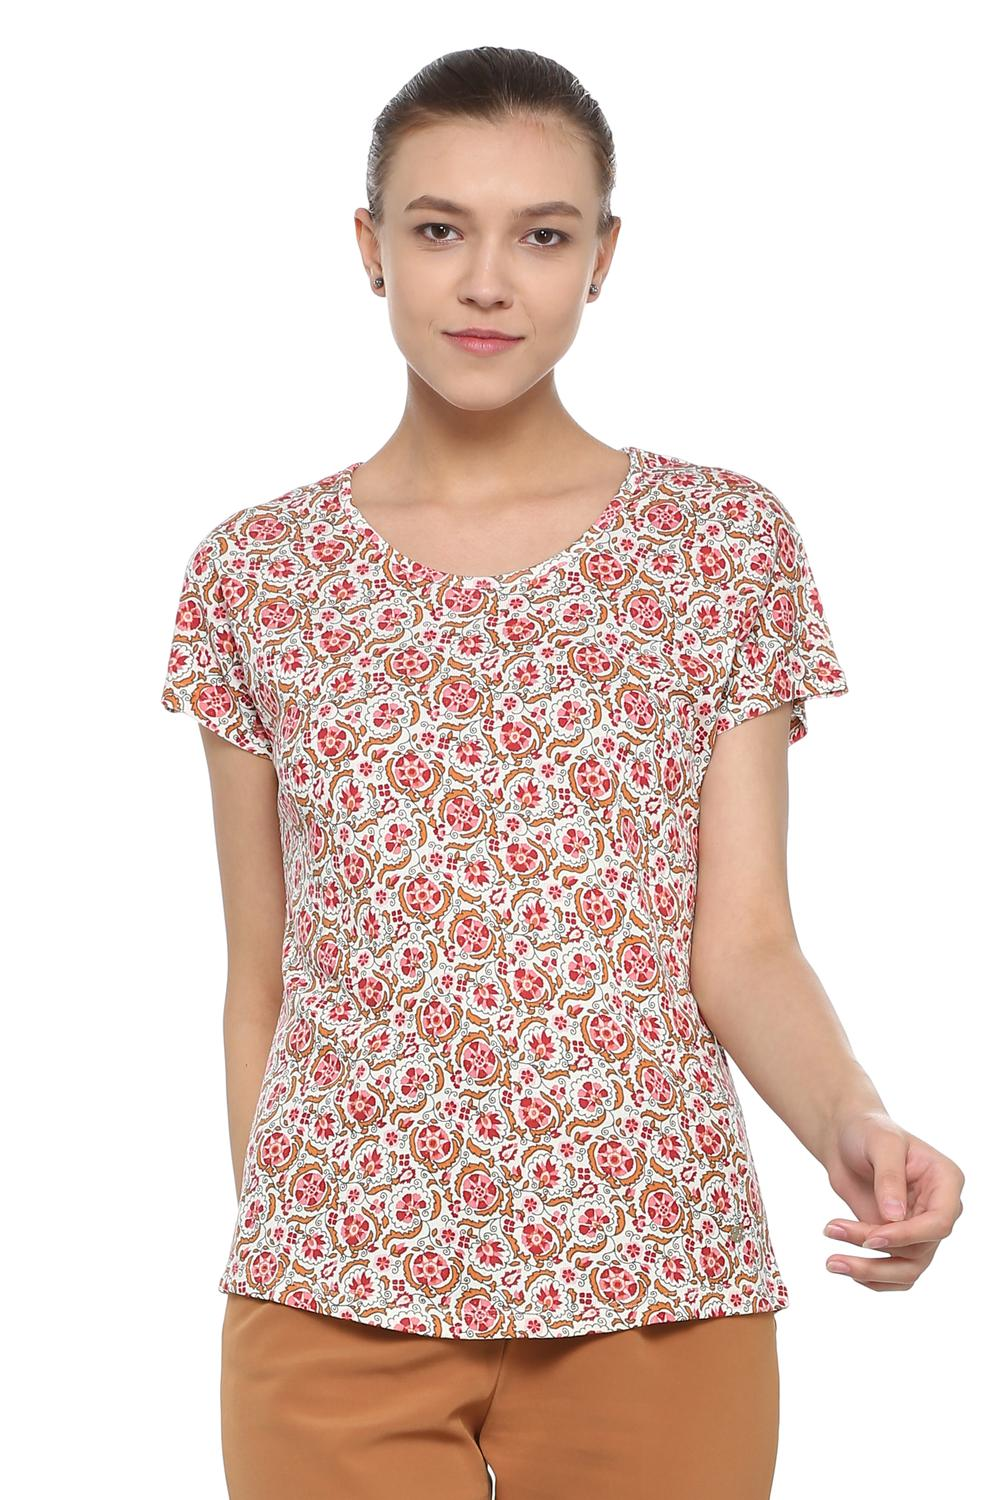 60e99f6a8 Solly Tees & Tops, Allen Solly Red Liva Top for Women at Allensolly.com